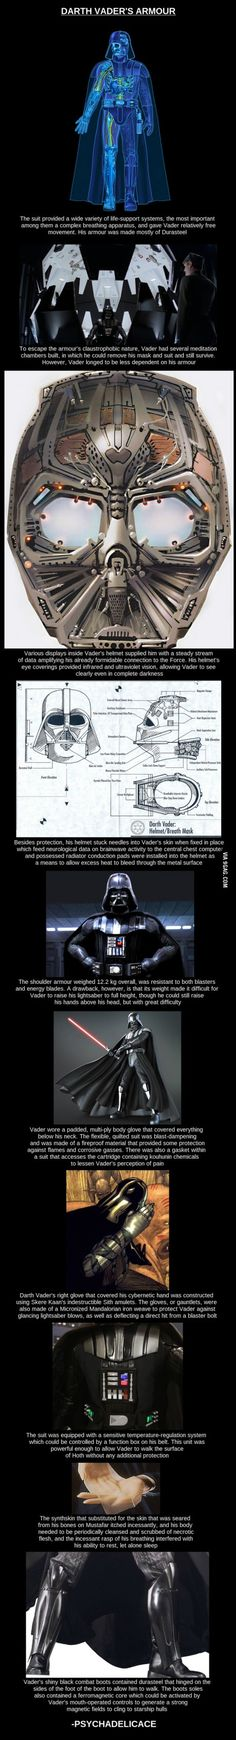 Darth Vader's Armor.  A very cool in-depth illustrated info-graphic.  #starwars #darthvader #vader